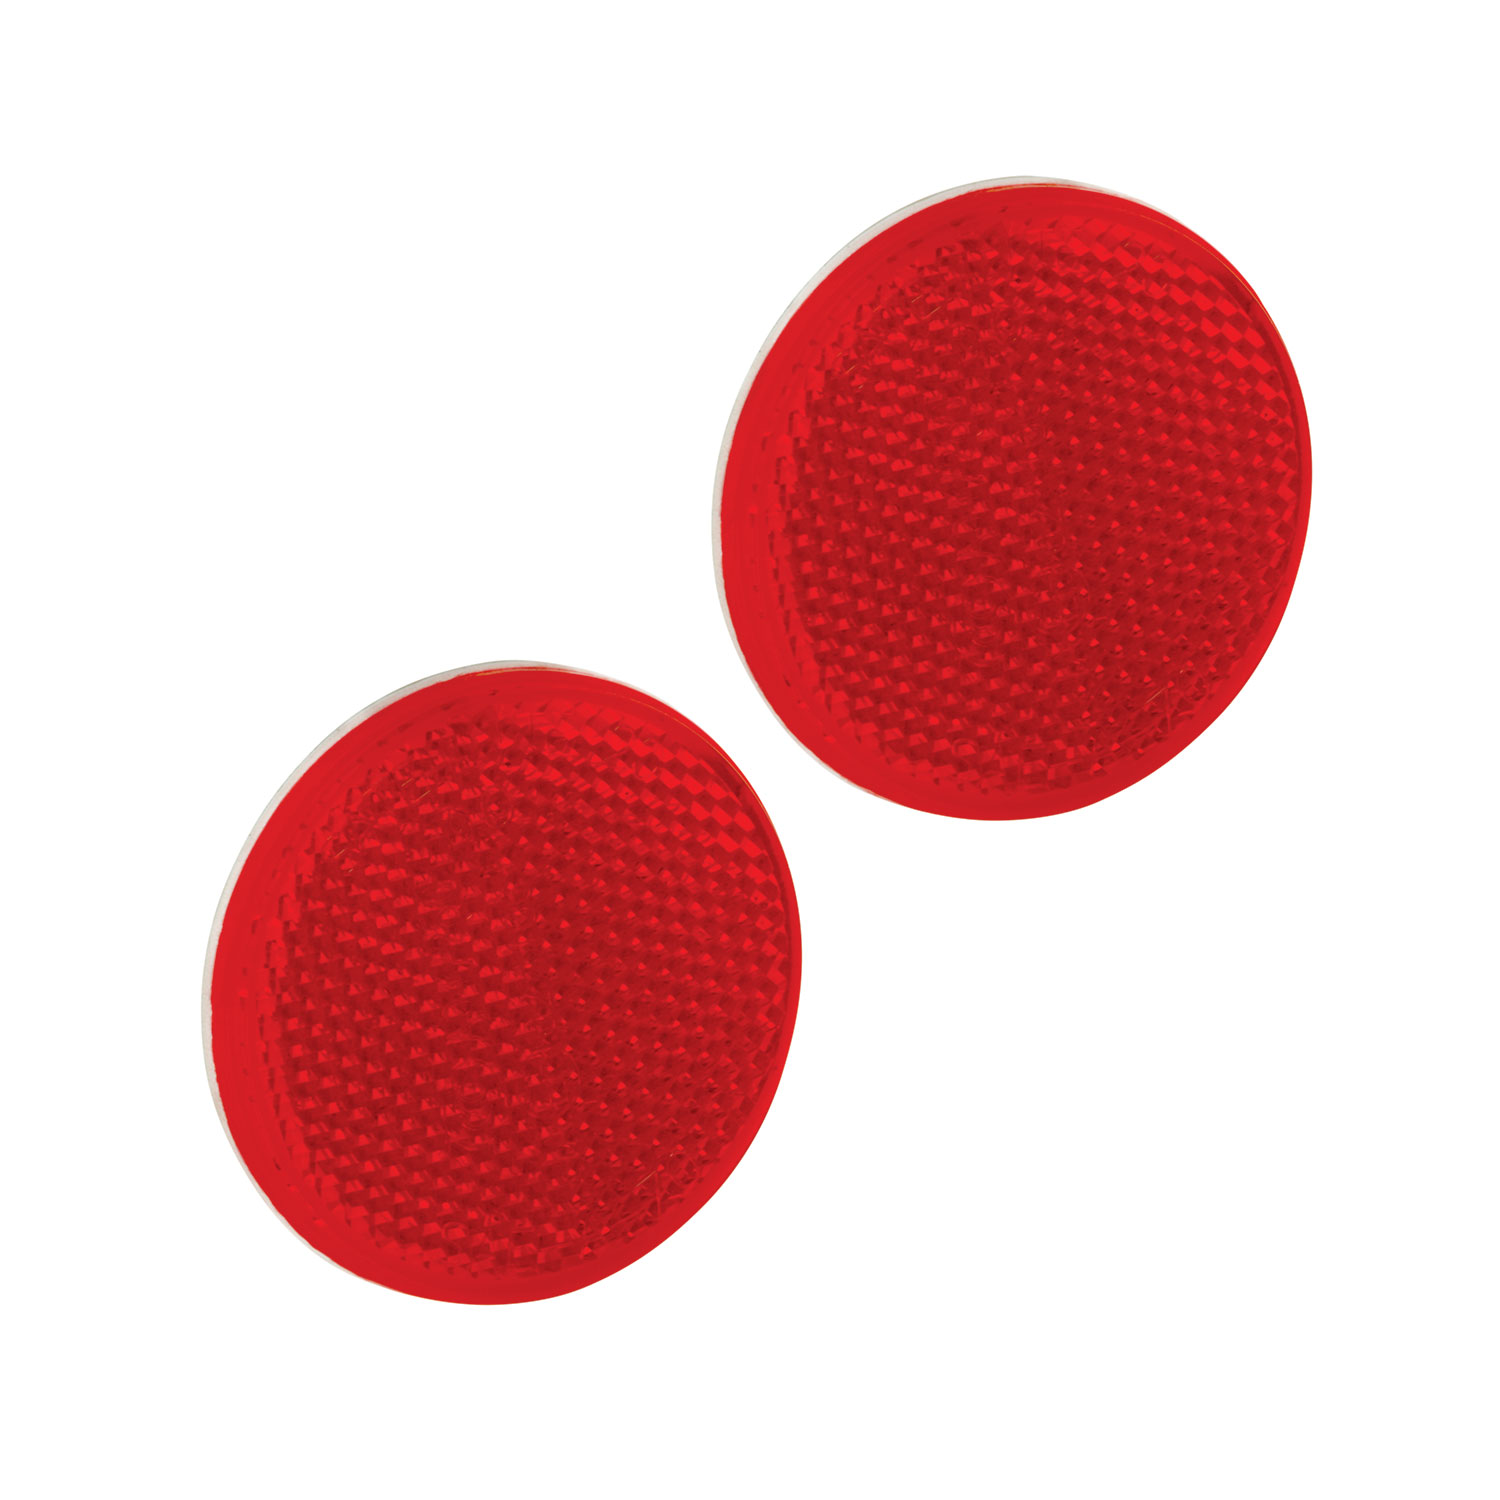 74-55-010 Draw-Tite Reflector Red Lens